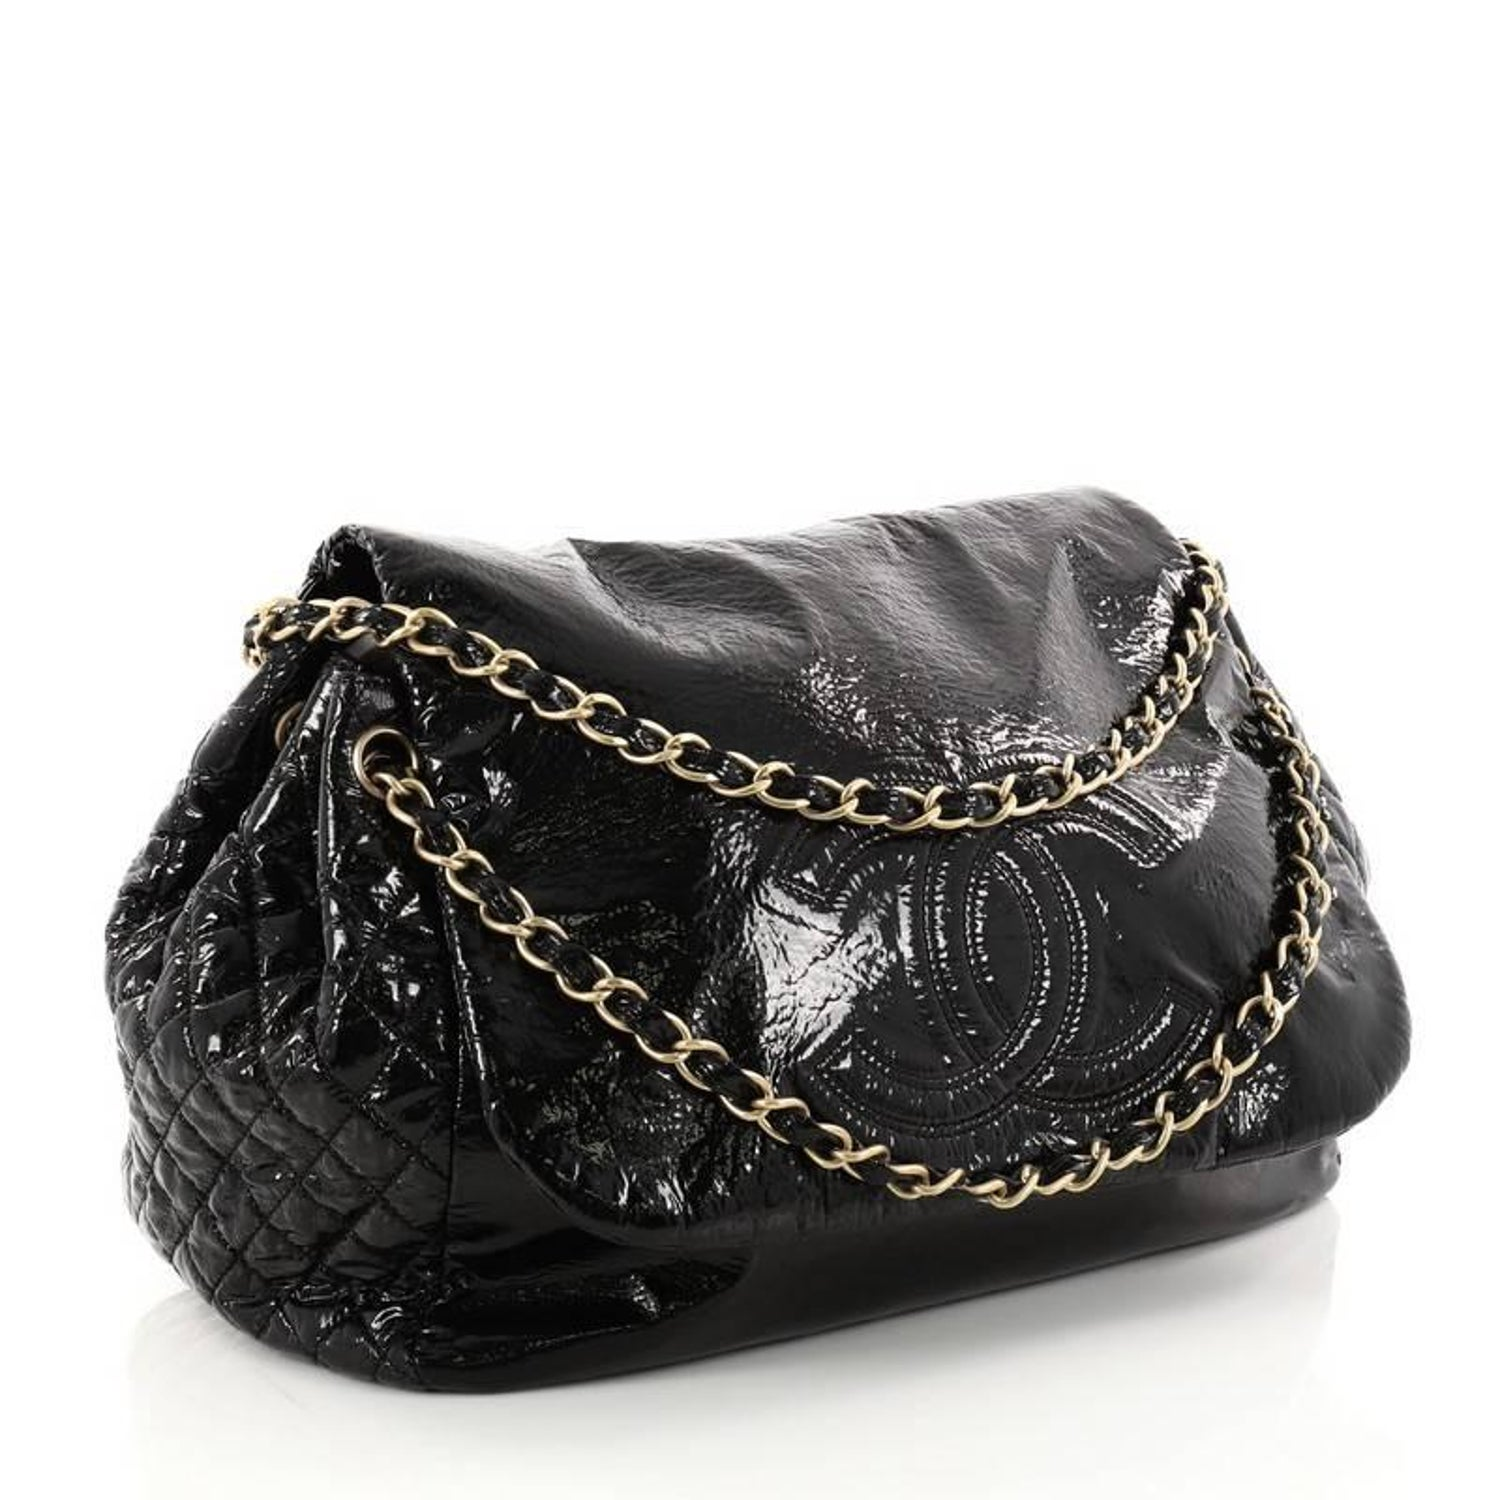 f5b403786285 Chanel Rock and Chain Flap Bag Patent Vinyl Large at 1stdibs